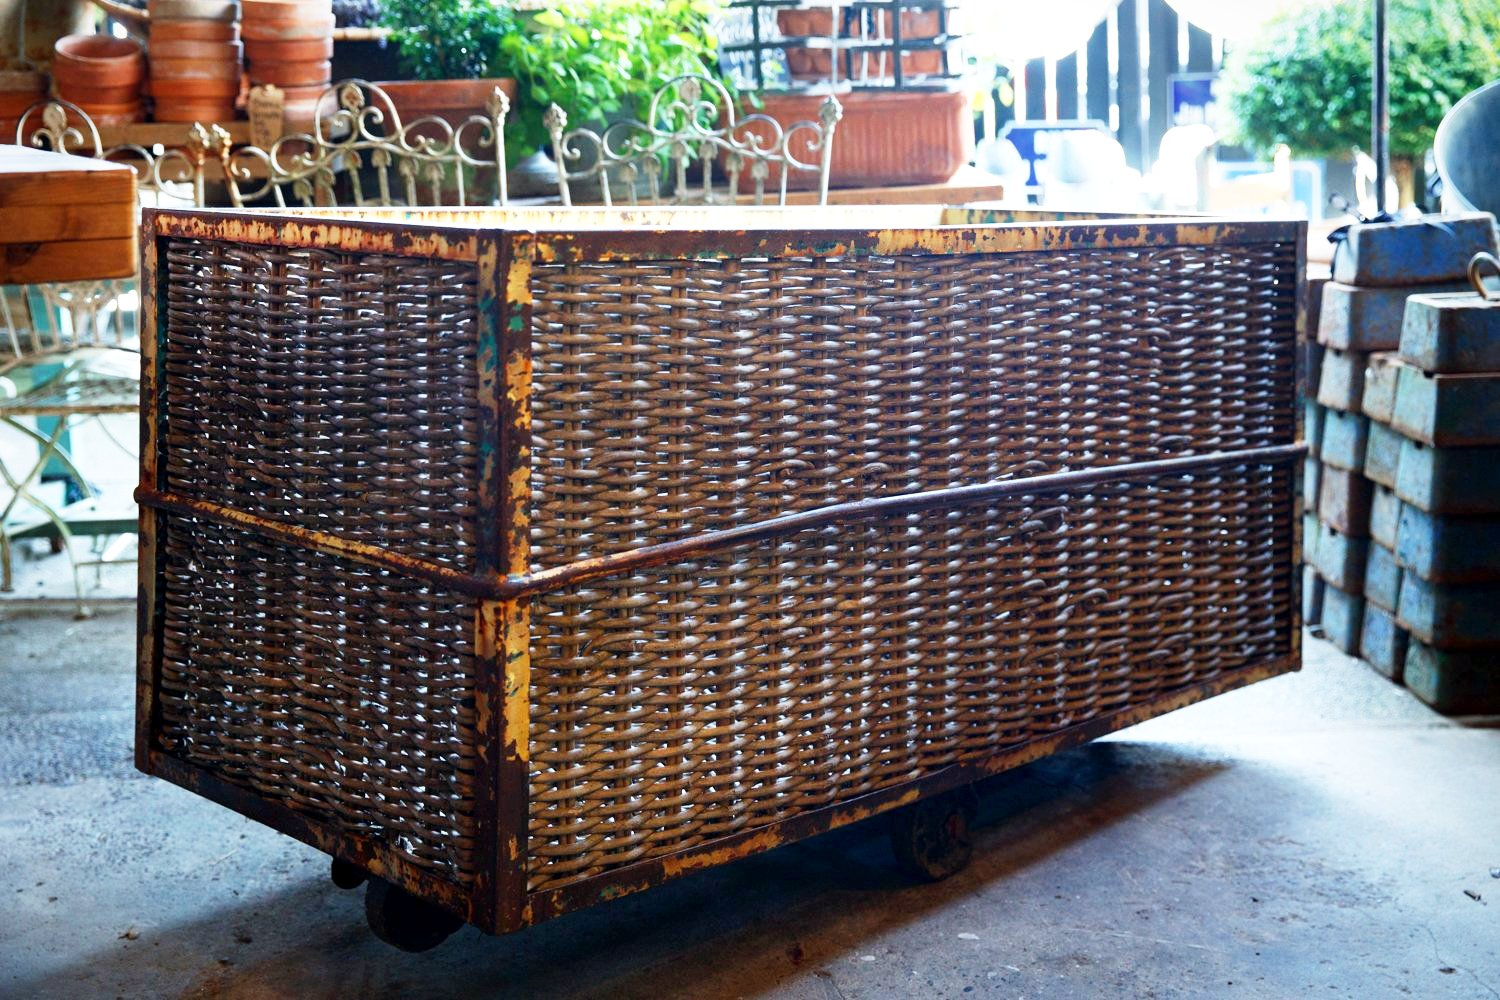 1940's French Industrial Factory Trolley - Firewood Basket